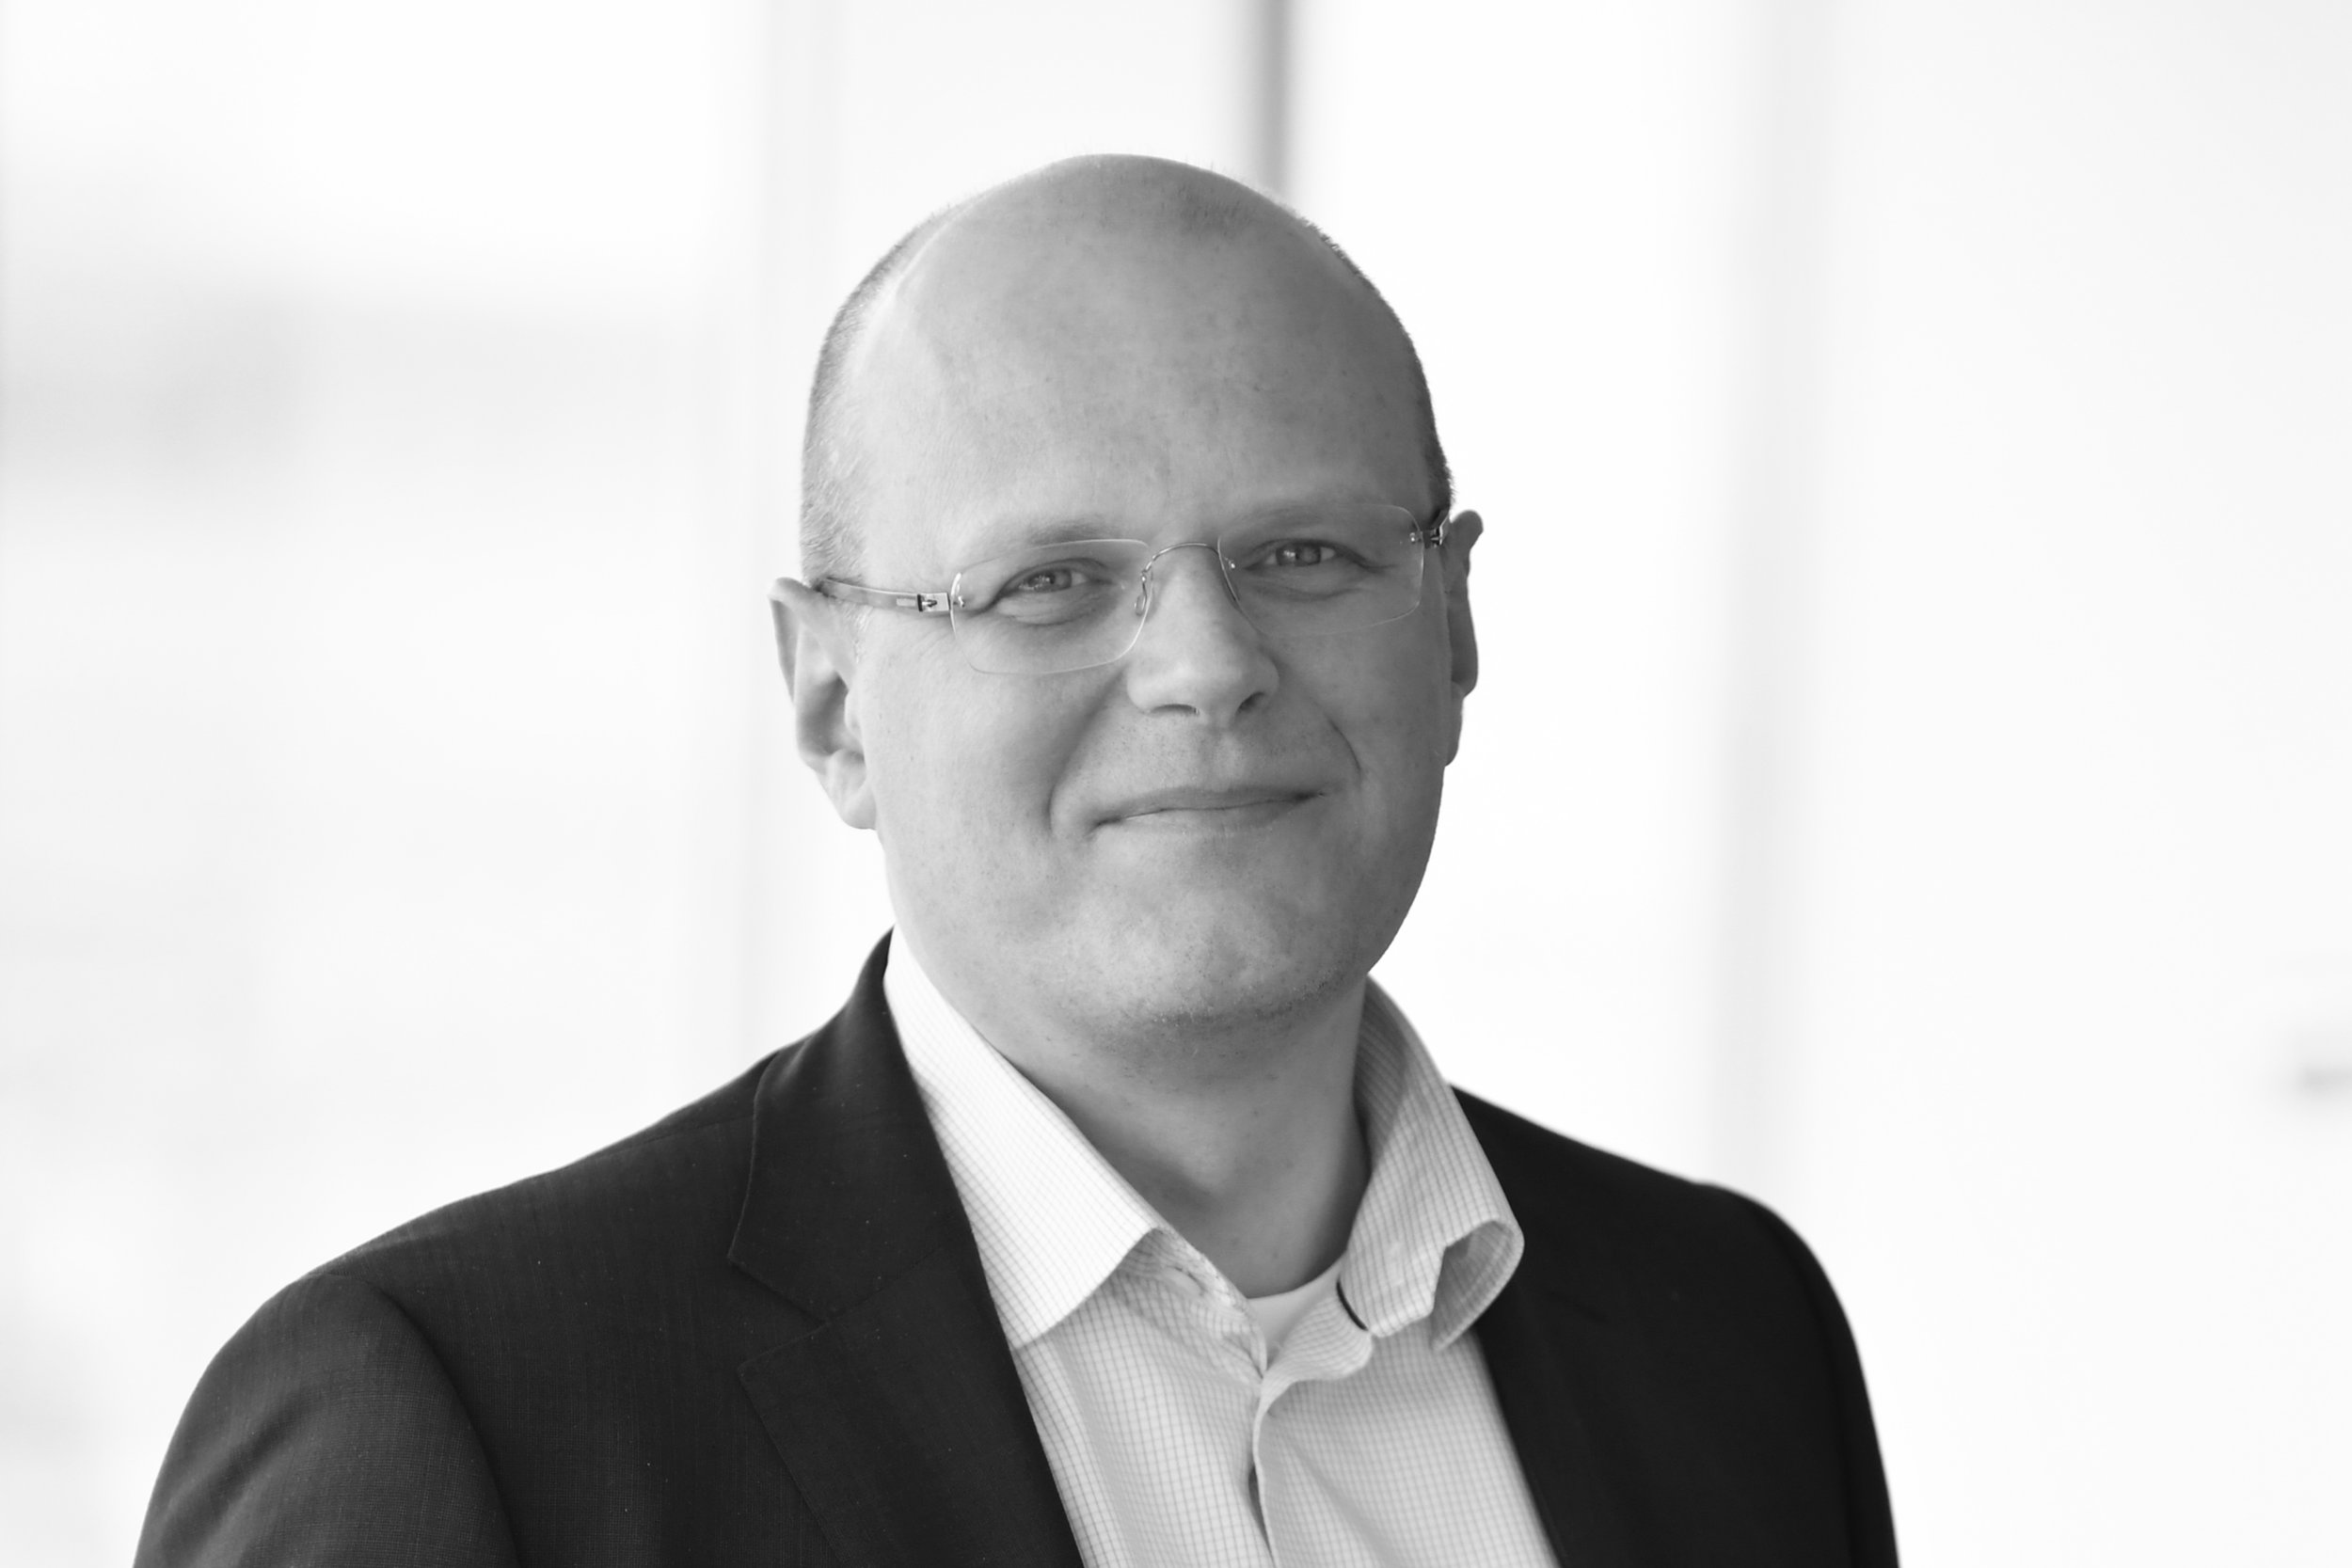 Björn Henriksson - CEO and PartnerInternational background from the manufacturing industry, MedTech and management consulting. Previous roles include EVP at Etac, Principal at Arthur D. Little, and Electrolux Italy. Read more →+46 (0)76 100 18 86bjorn.henriksson@nordicinterim.com